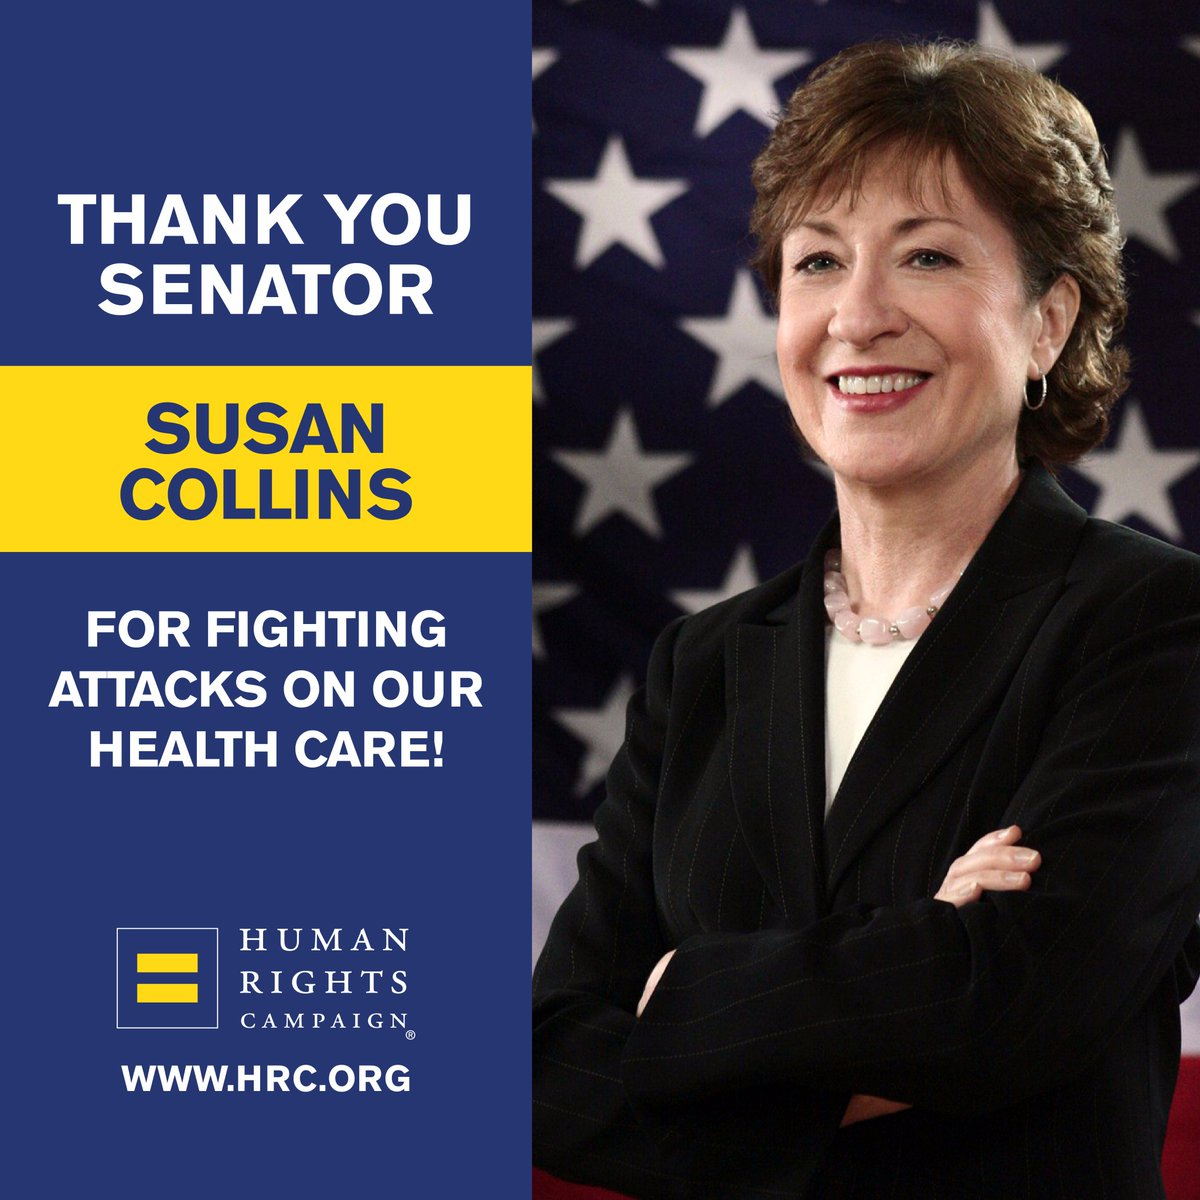 Thank you to Senators Collins and Murkowski for taking a stand to #SaveACA.